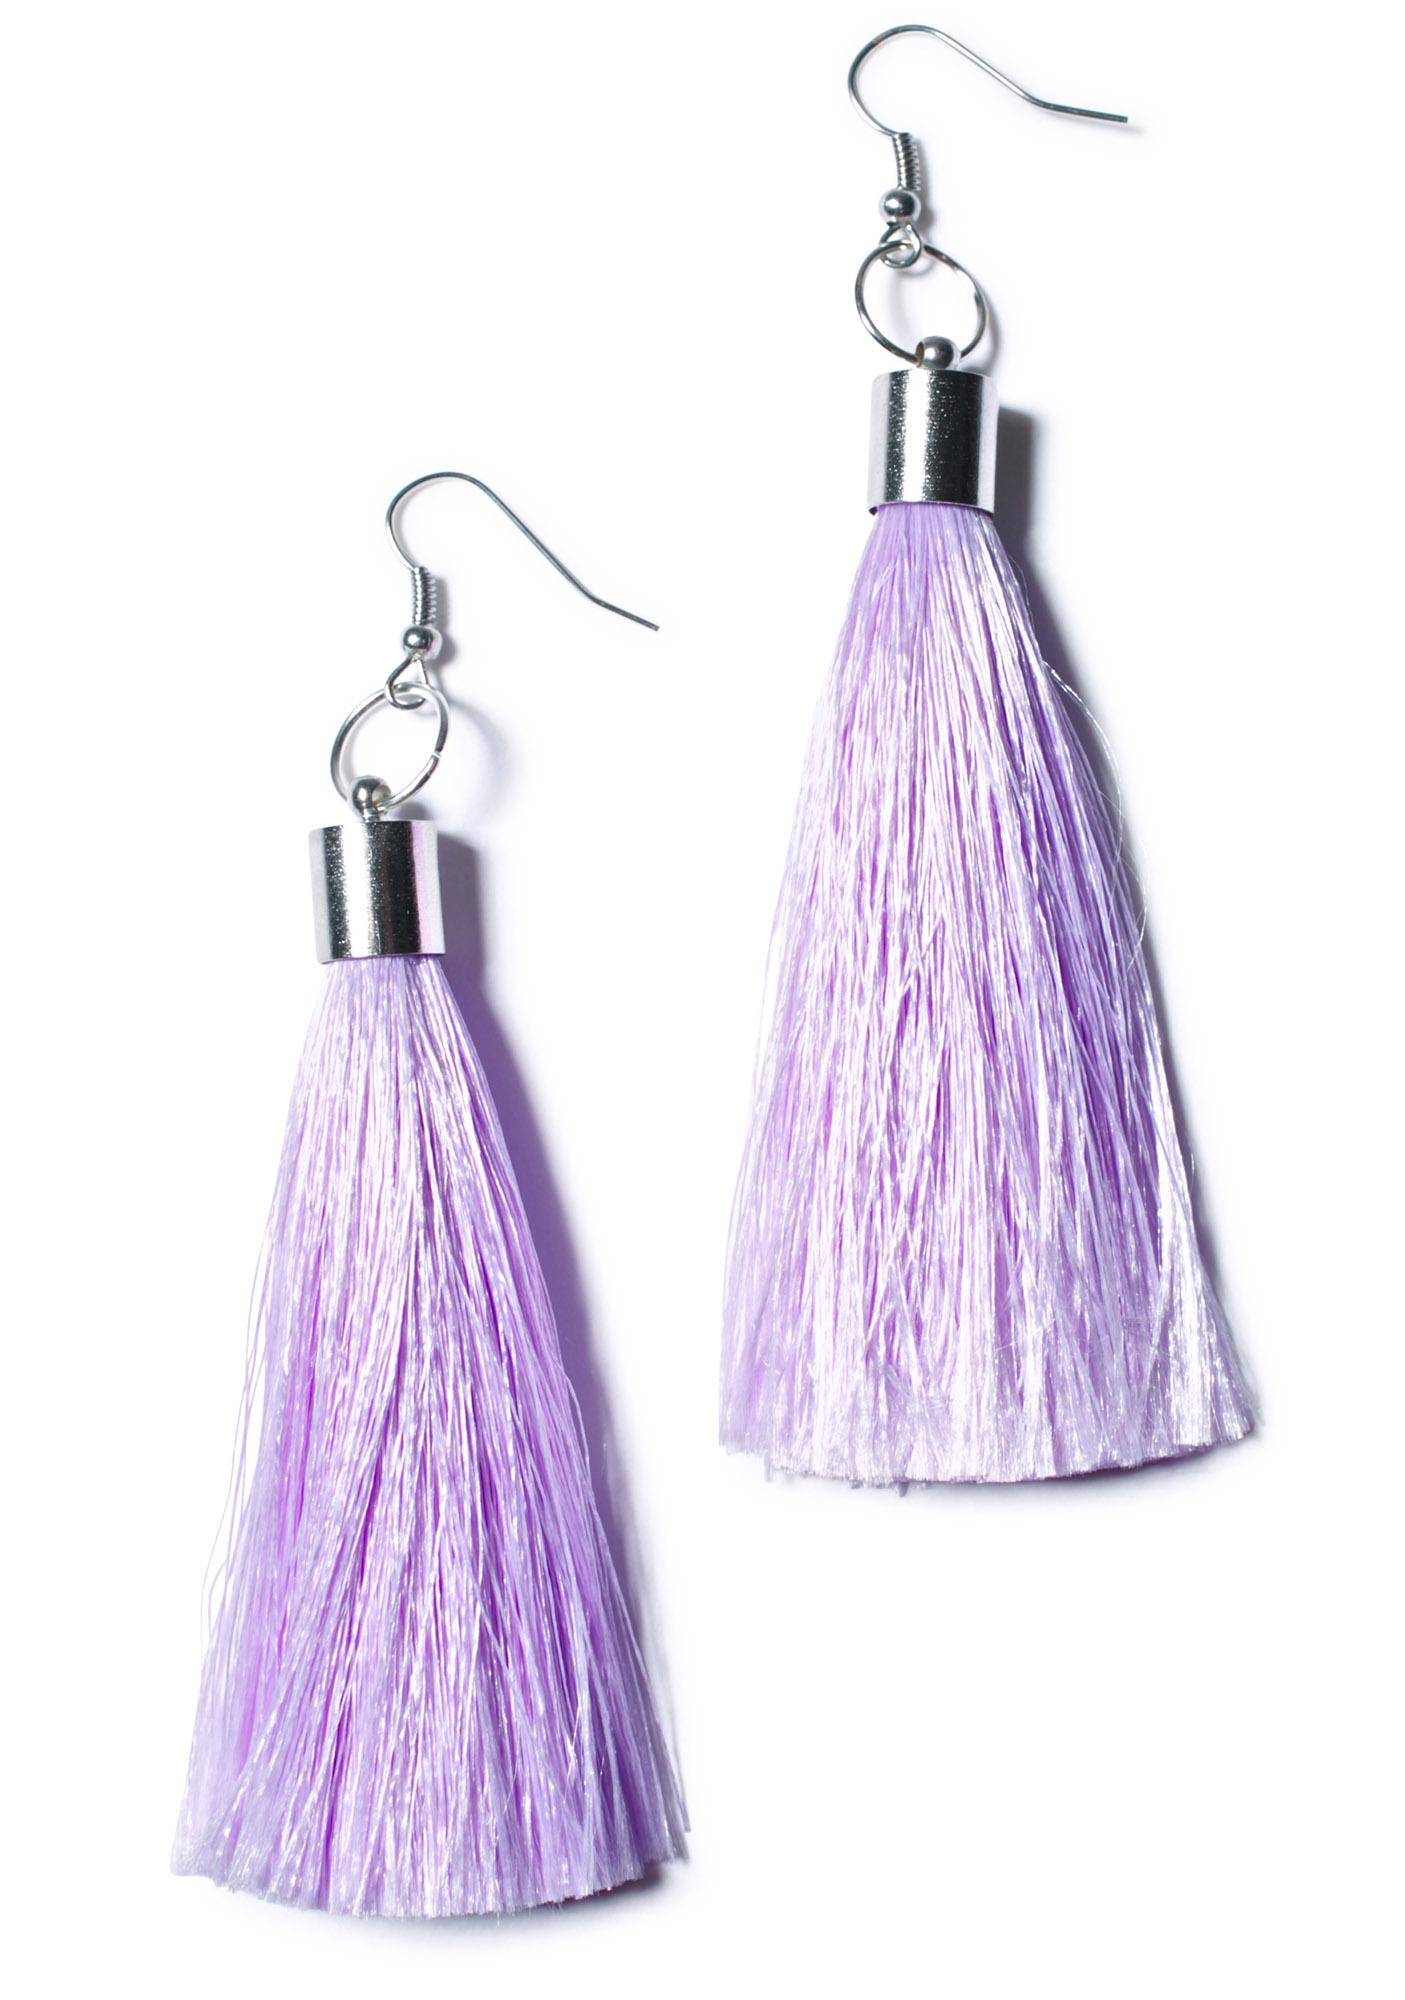 Suzywan Deluxe Tila Tassle Earrings